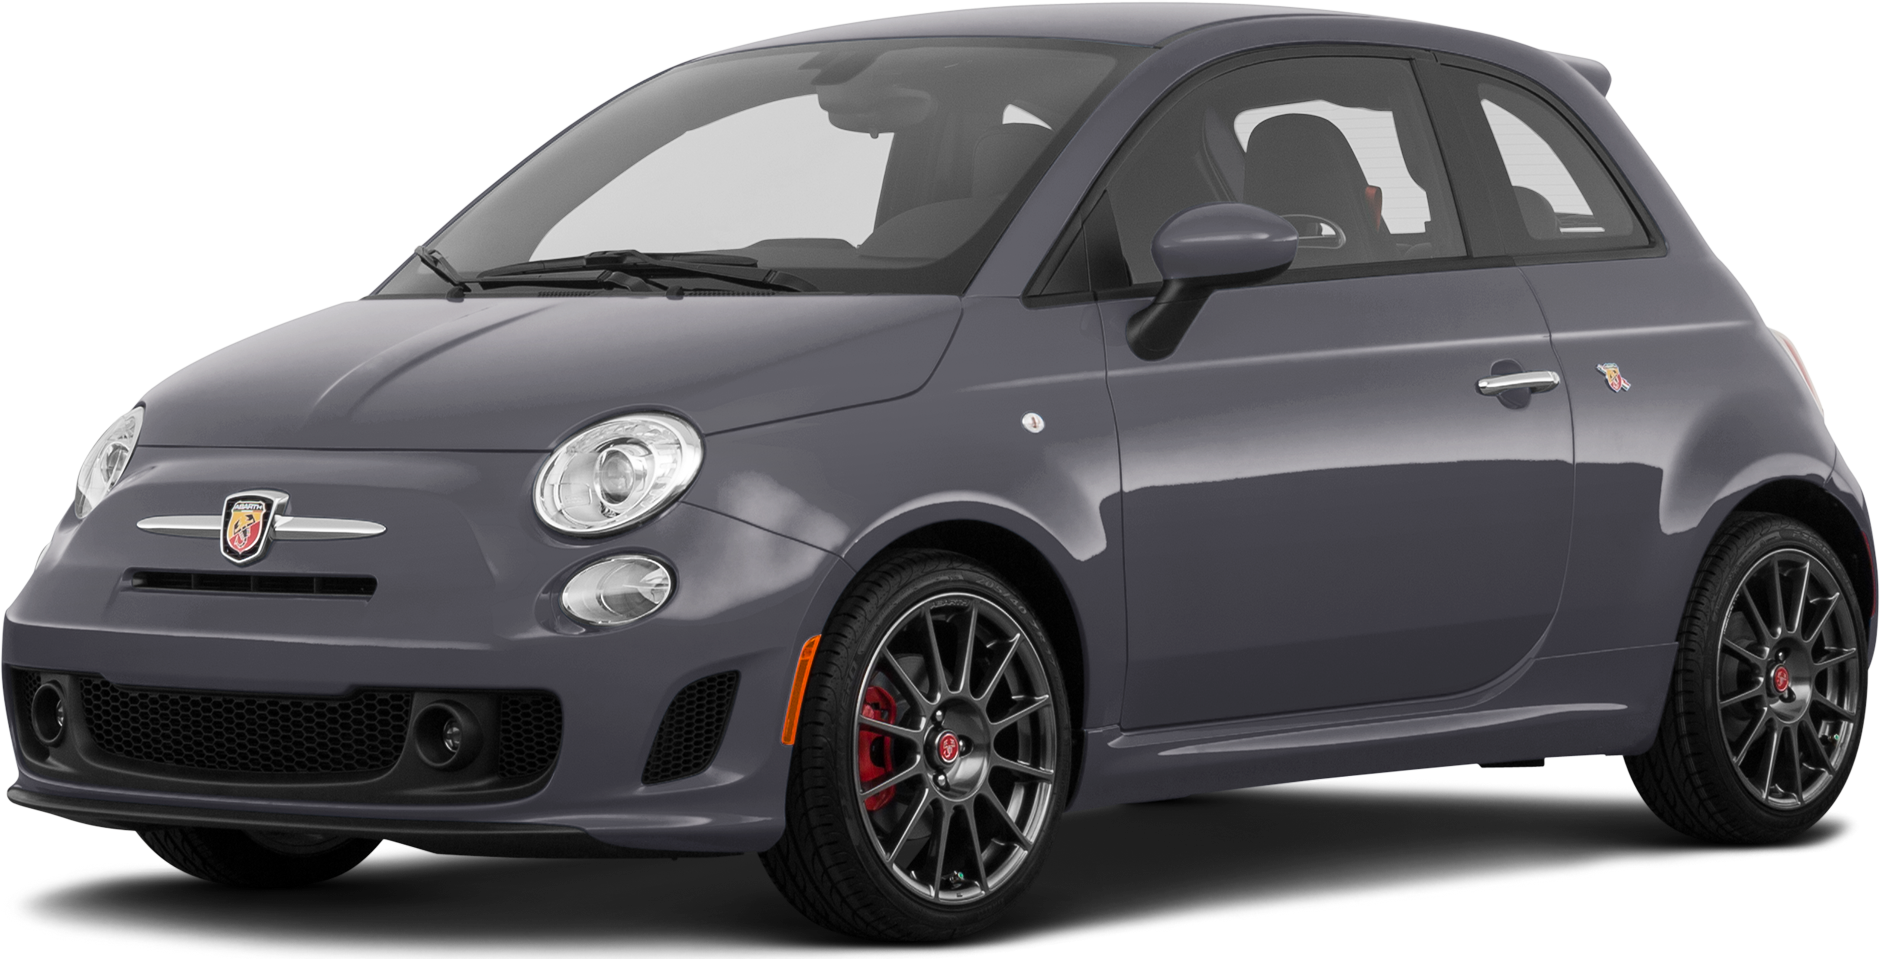 2019 Fiat 500 Abarth Values Cars For Sale Kelley Blue Book